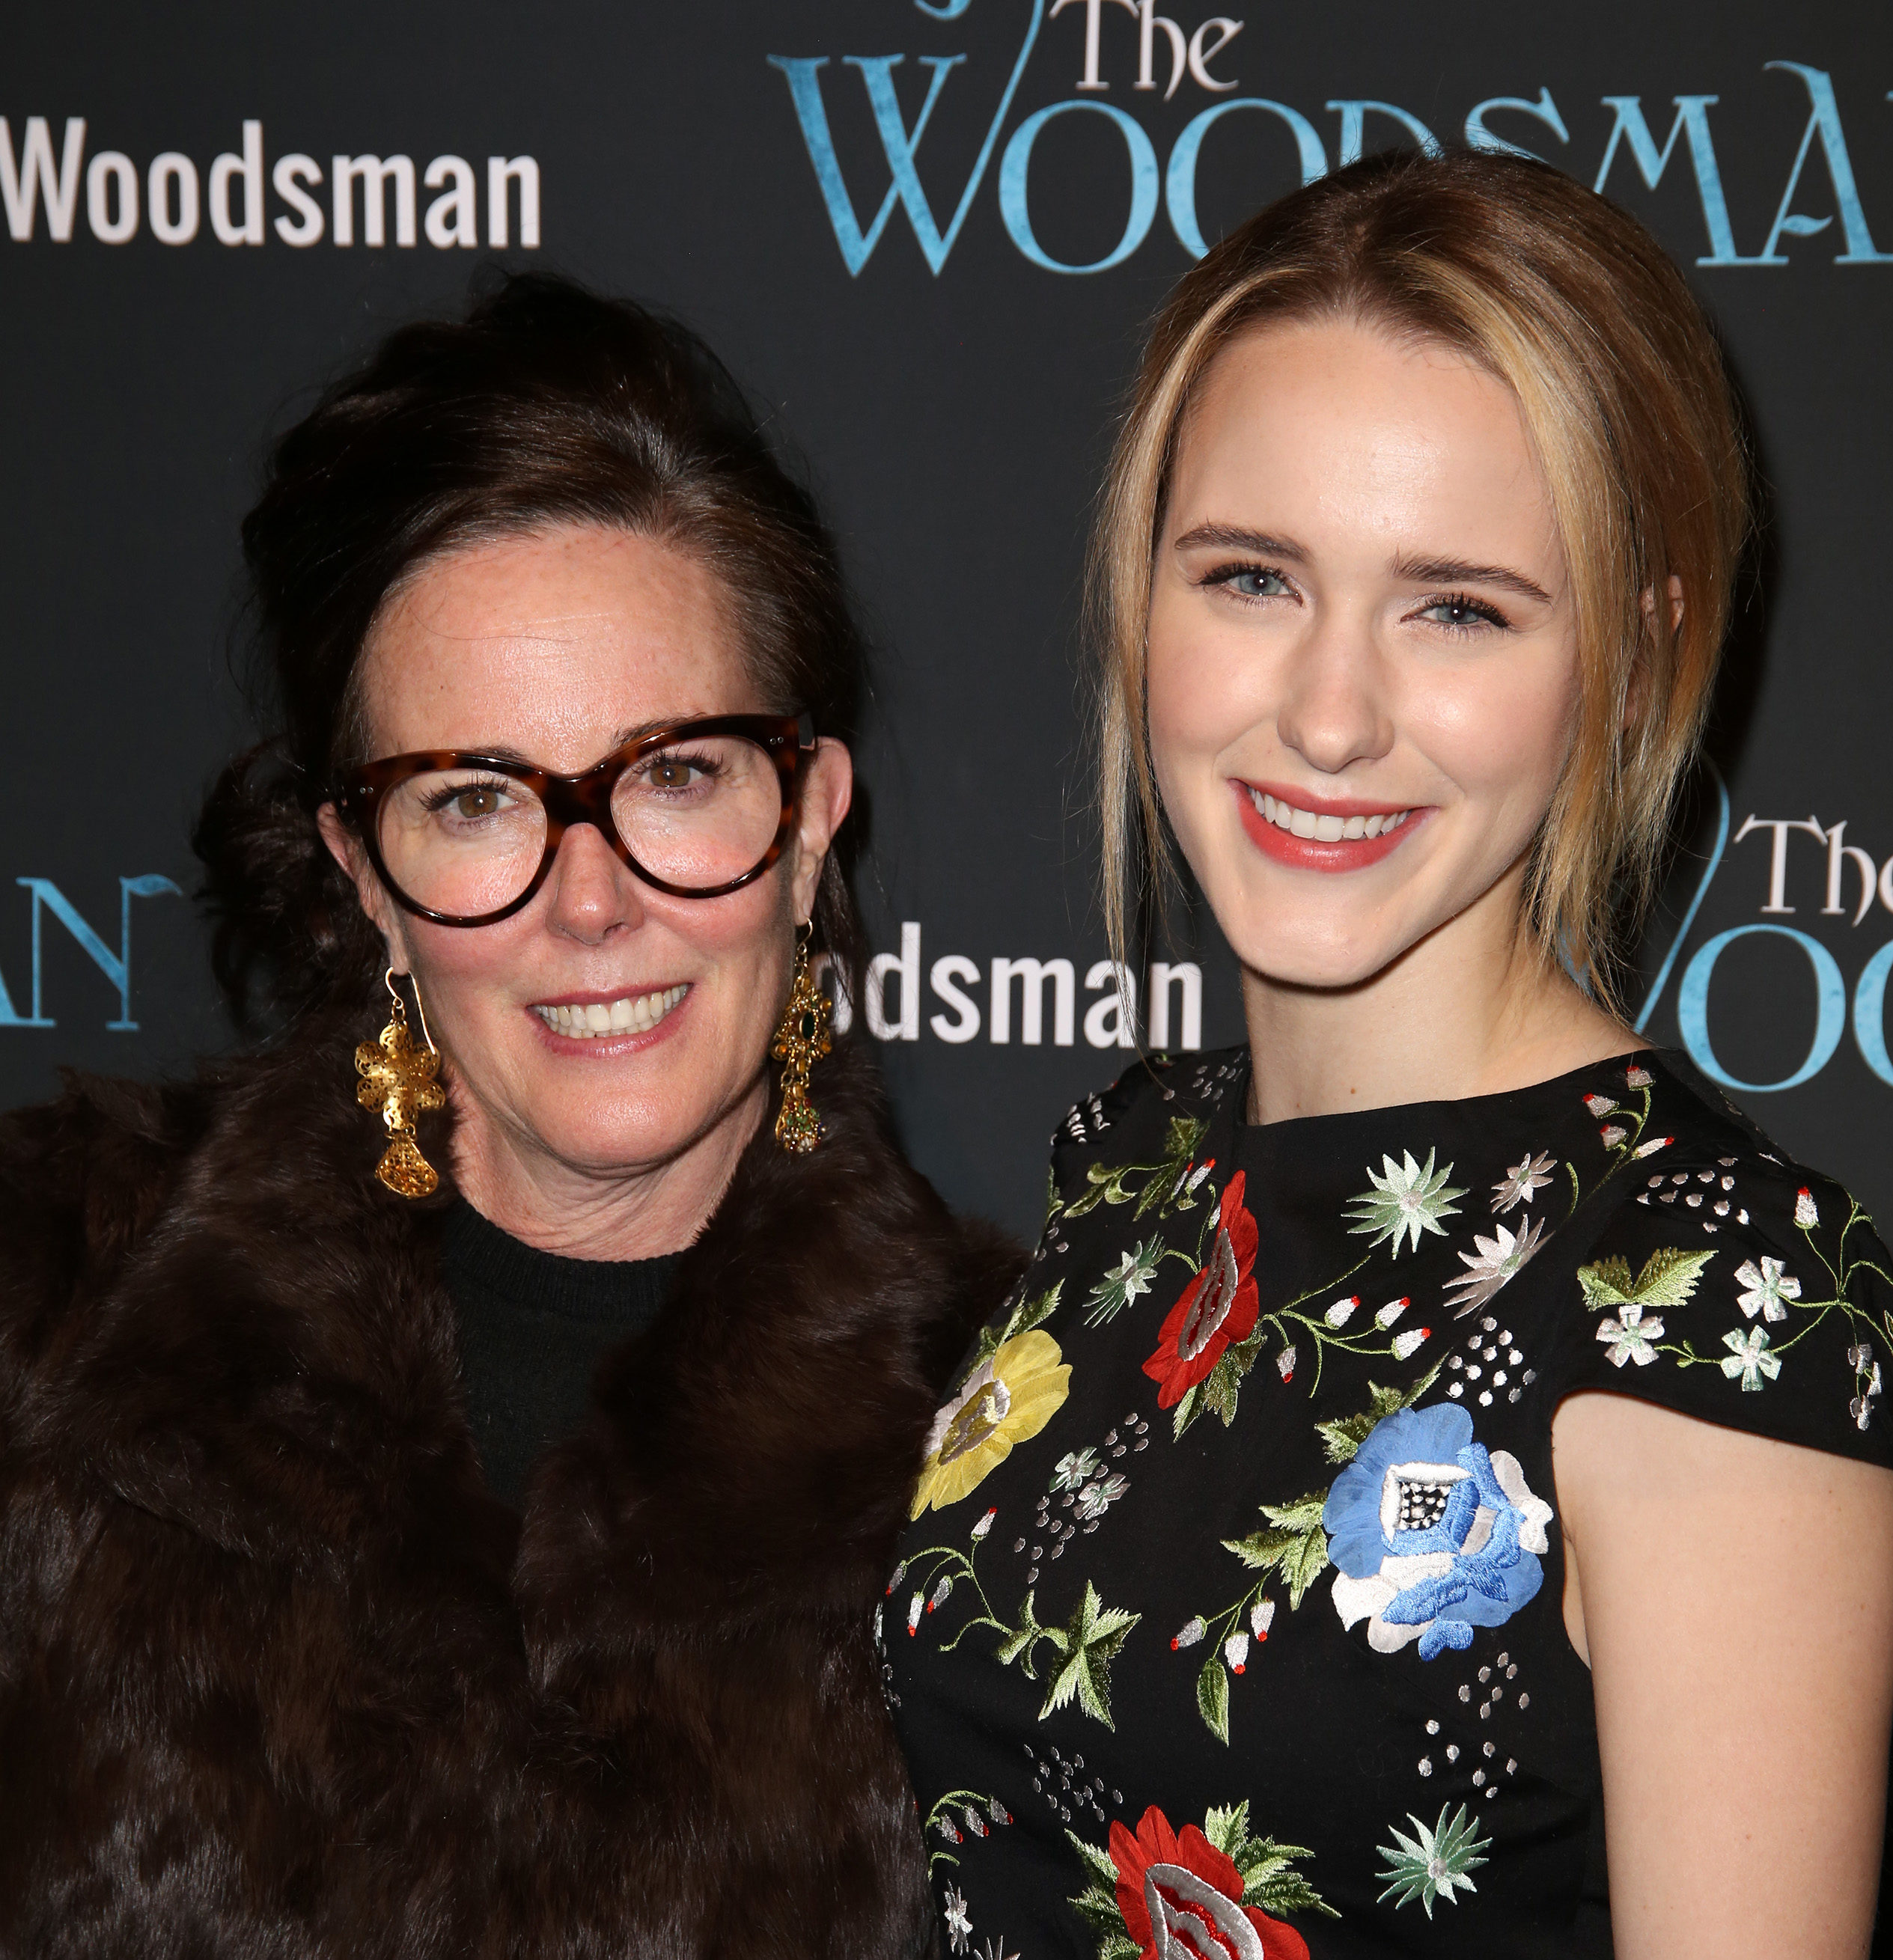 Rachel Brosnahan (aka Mrs. Maisel) has commented on the death of her aunt, Kate Spade, with the most moving Instagram video